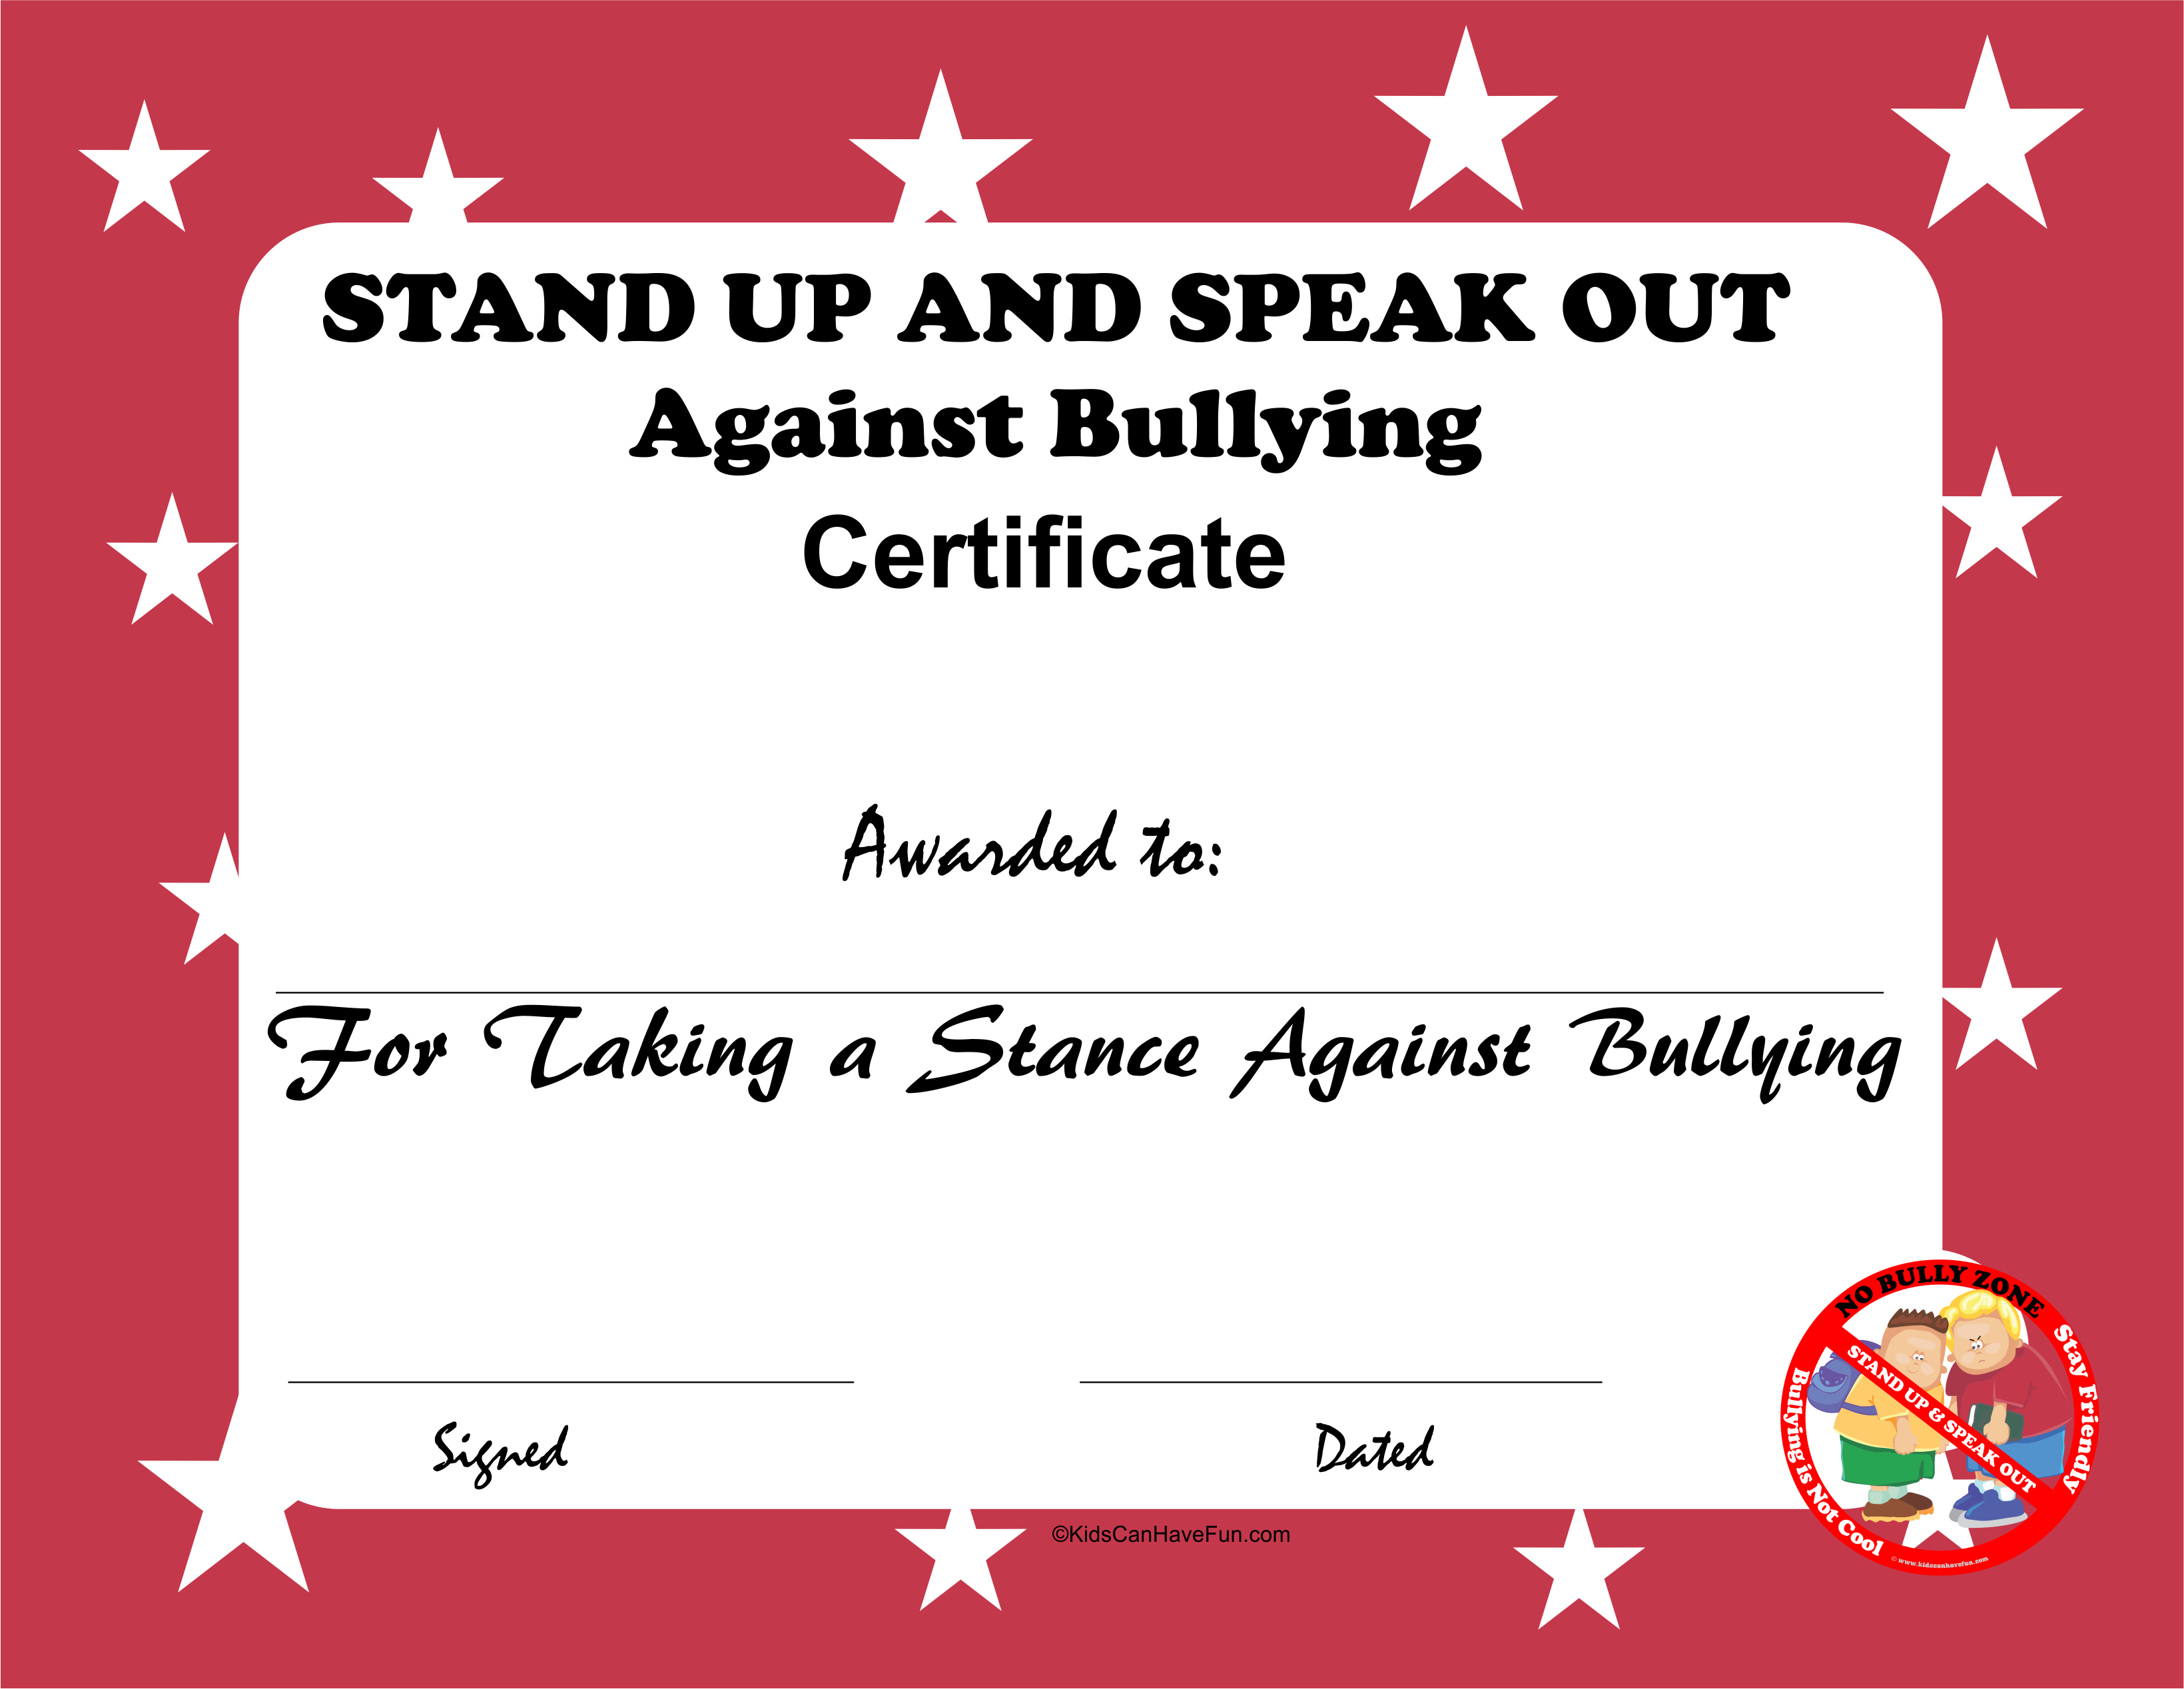 Stand Up And Speak Out